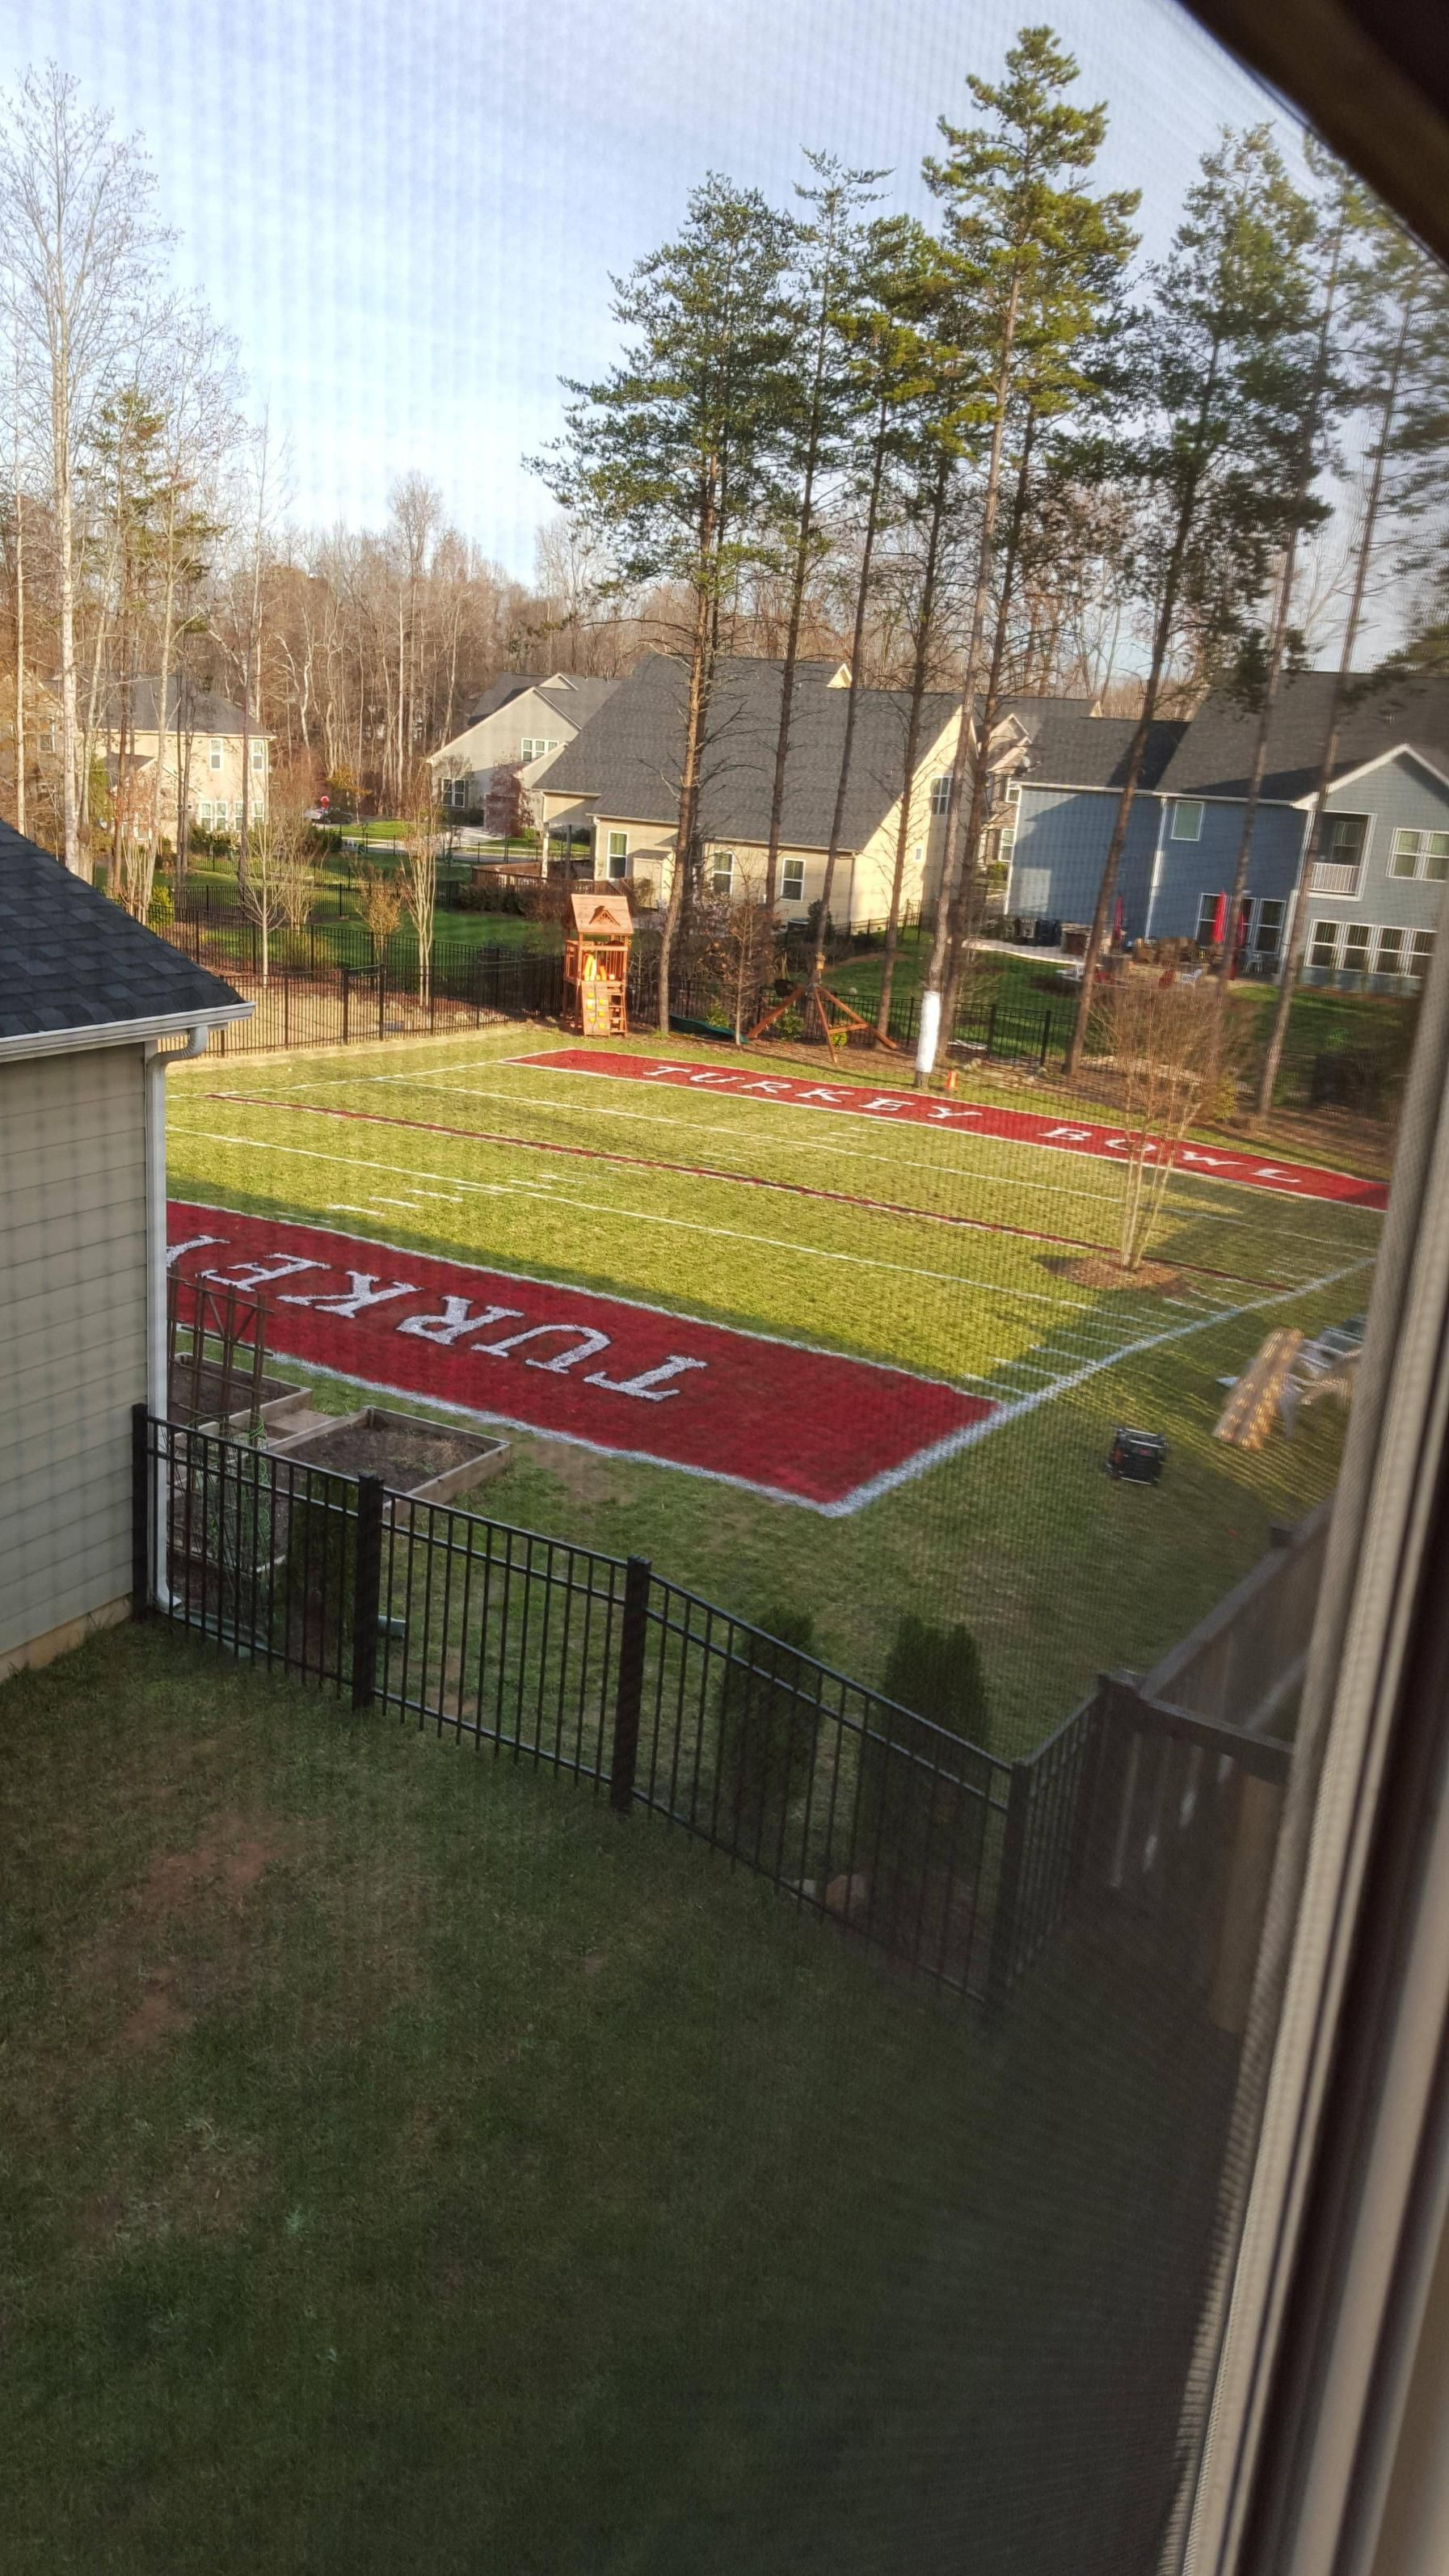 How To Make A Backyard Football Field 2021 In 2020 Backyard Baseball Batting Cage Backyard Backyard Sports